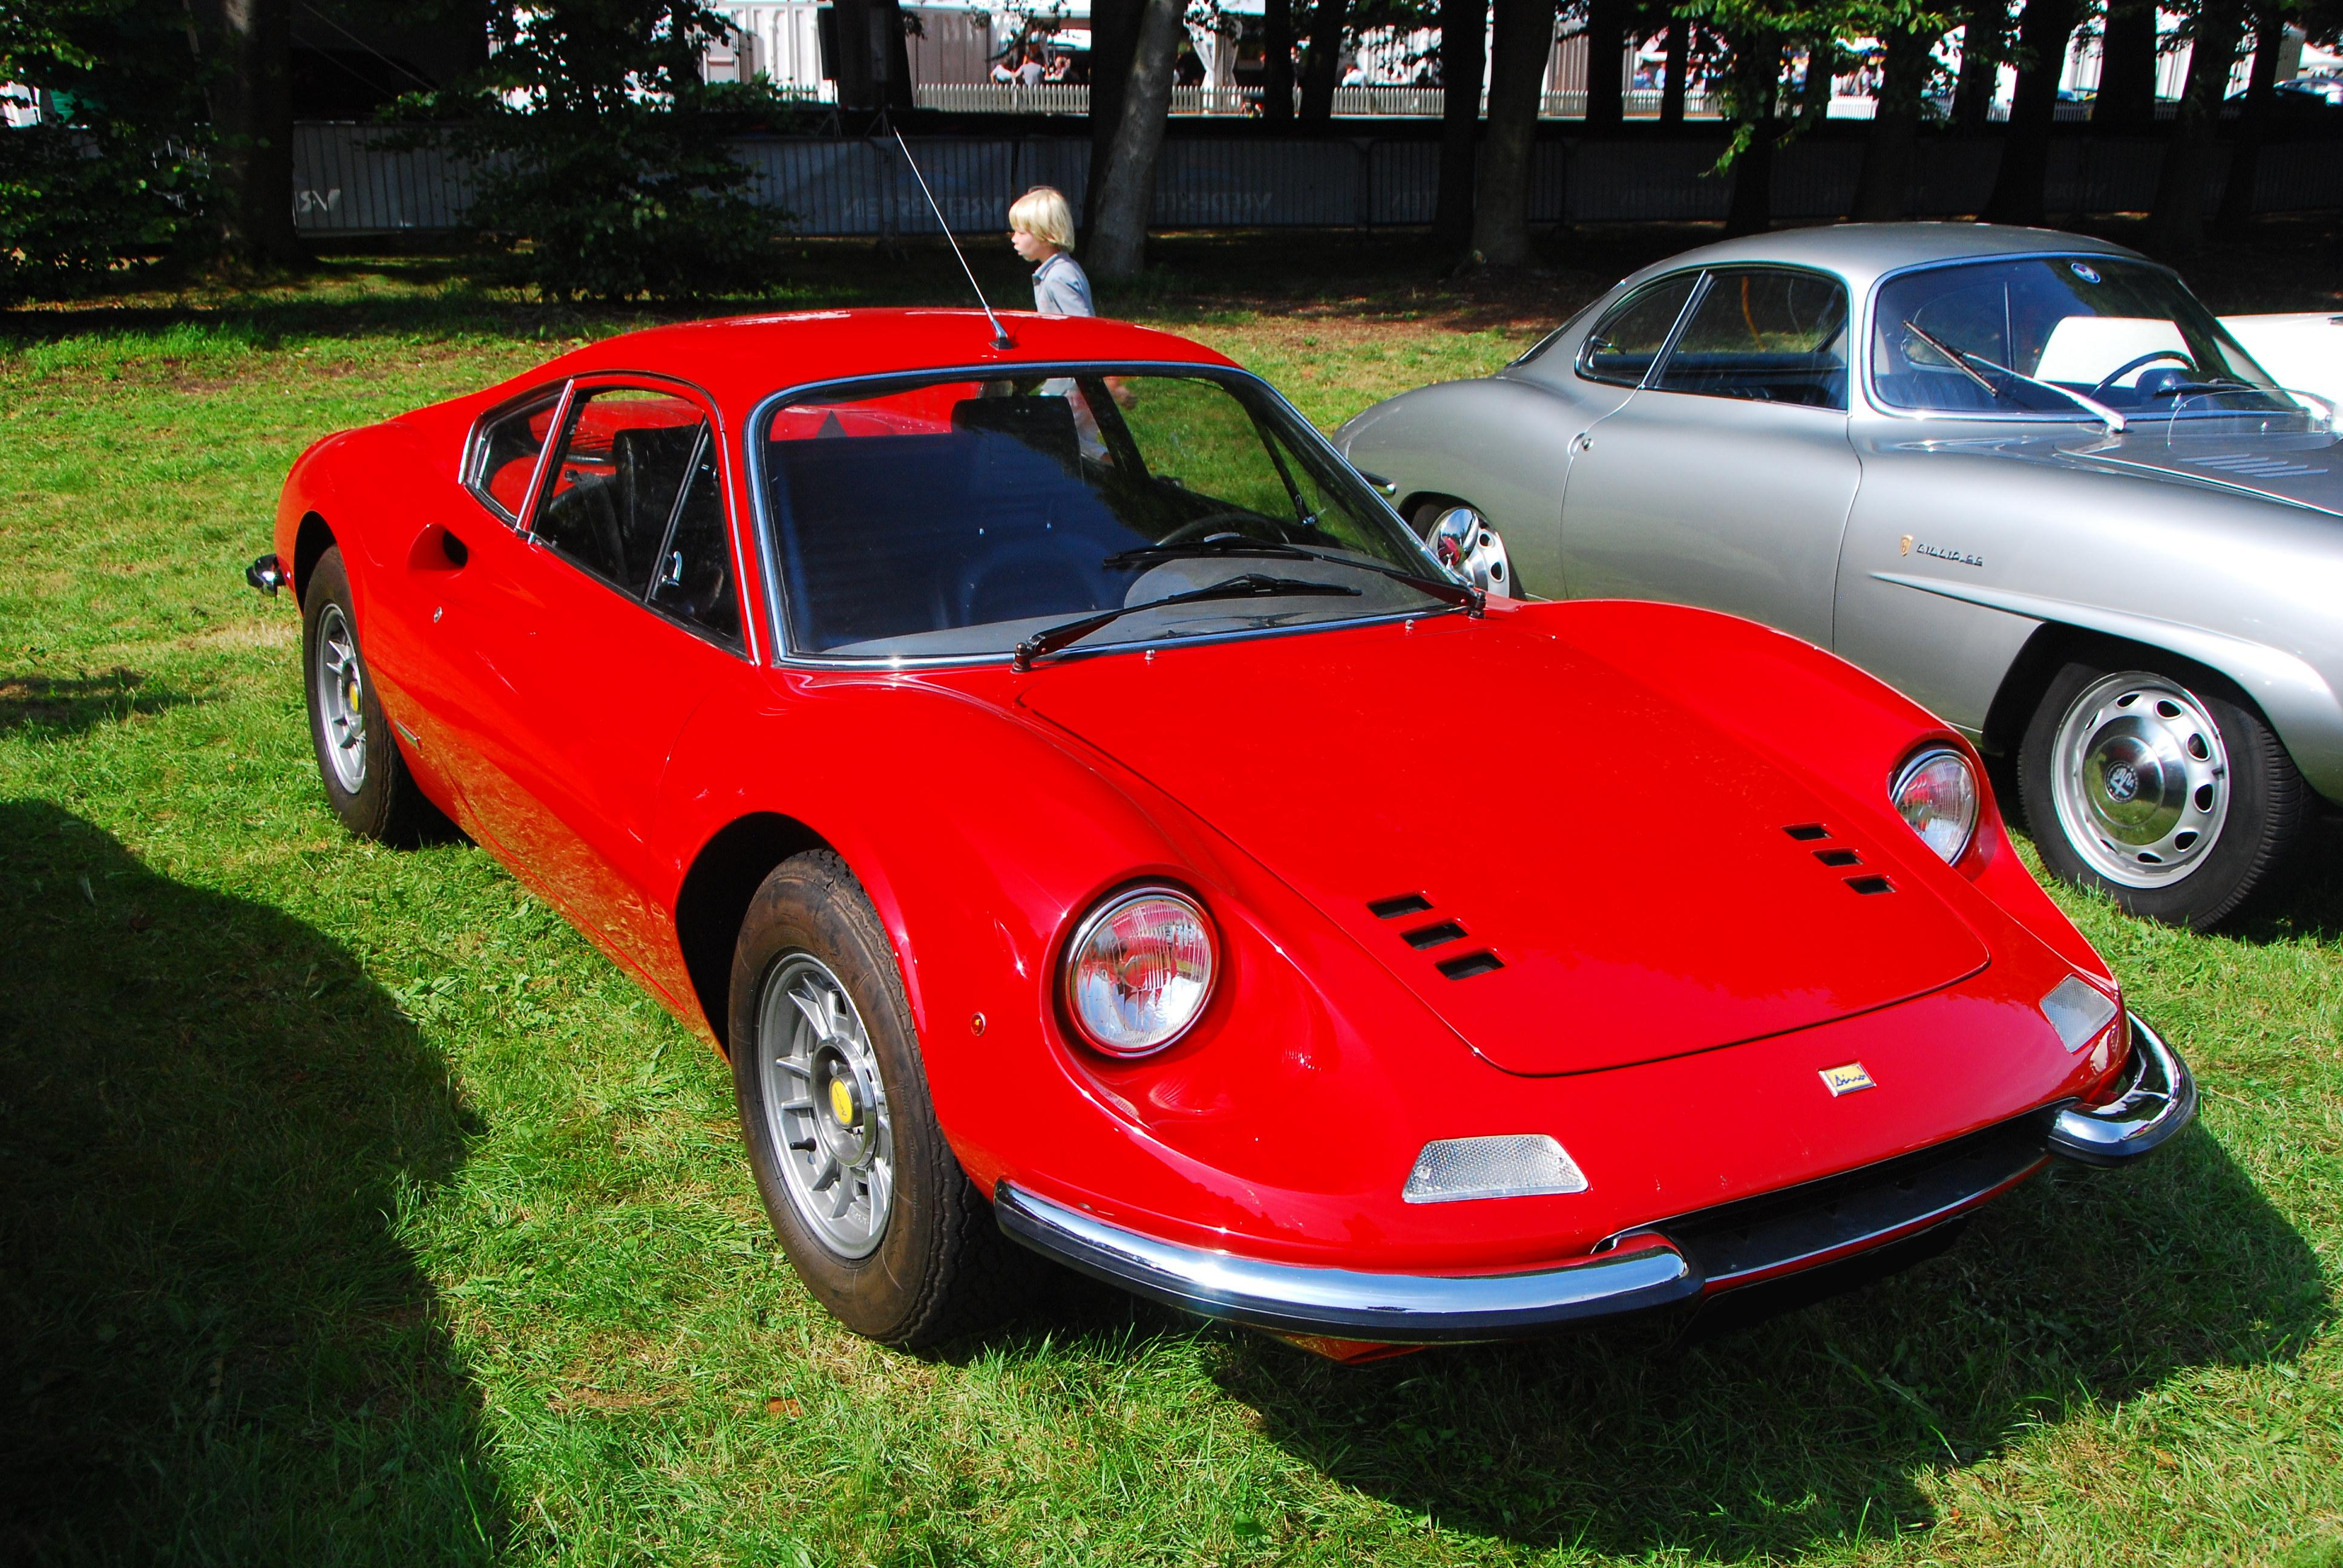 fiat 124 for sale with File Ferrari Dino 246gt Coupe on Fiat 124 Spider Adorned With Abarth Skin furthermore Mercedes Benz 500 E together with C289528 together with 500 W124 500 E 326 Hp additionally 2018 Lincoln Aviator Front Three Quarter In Motion.